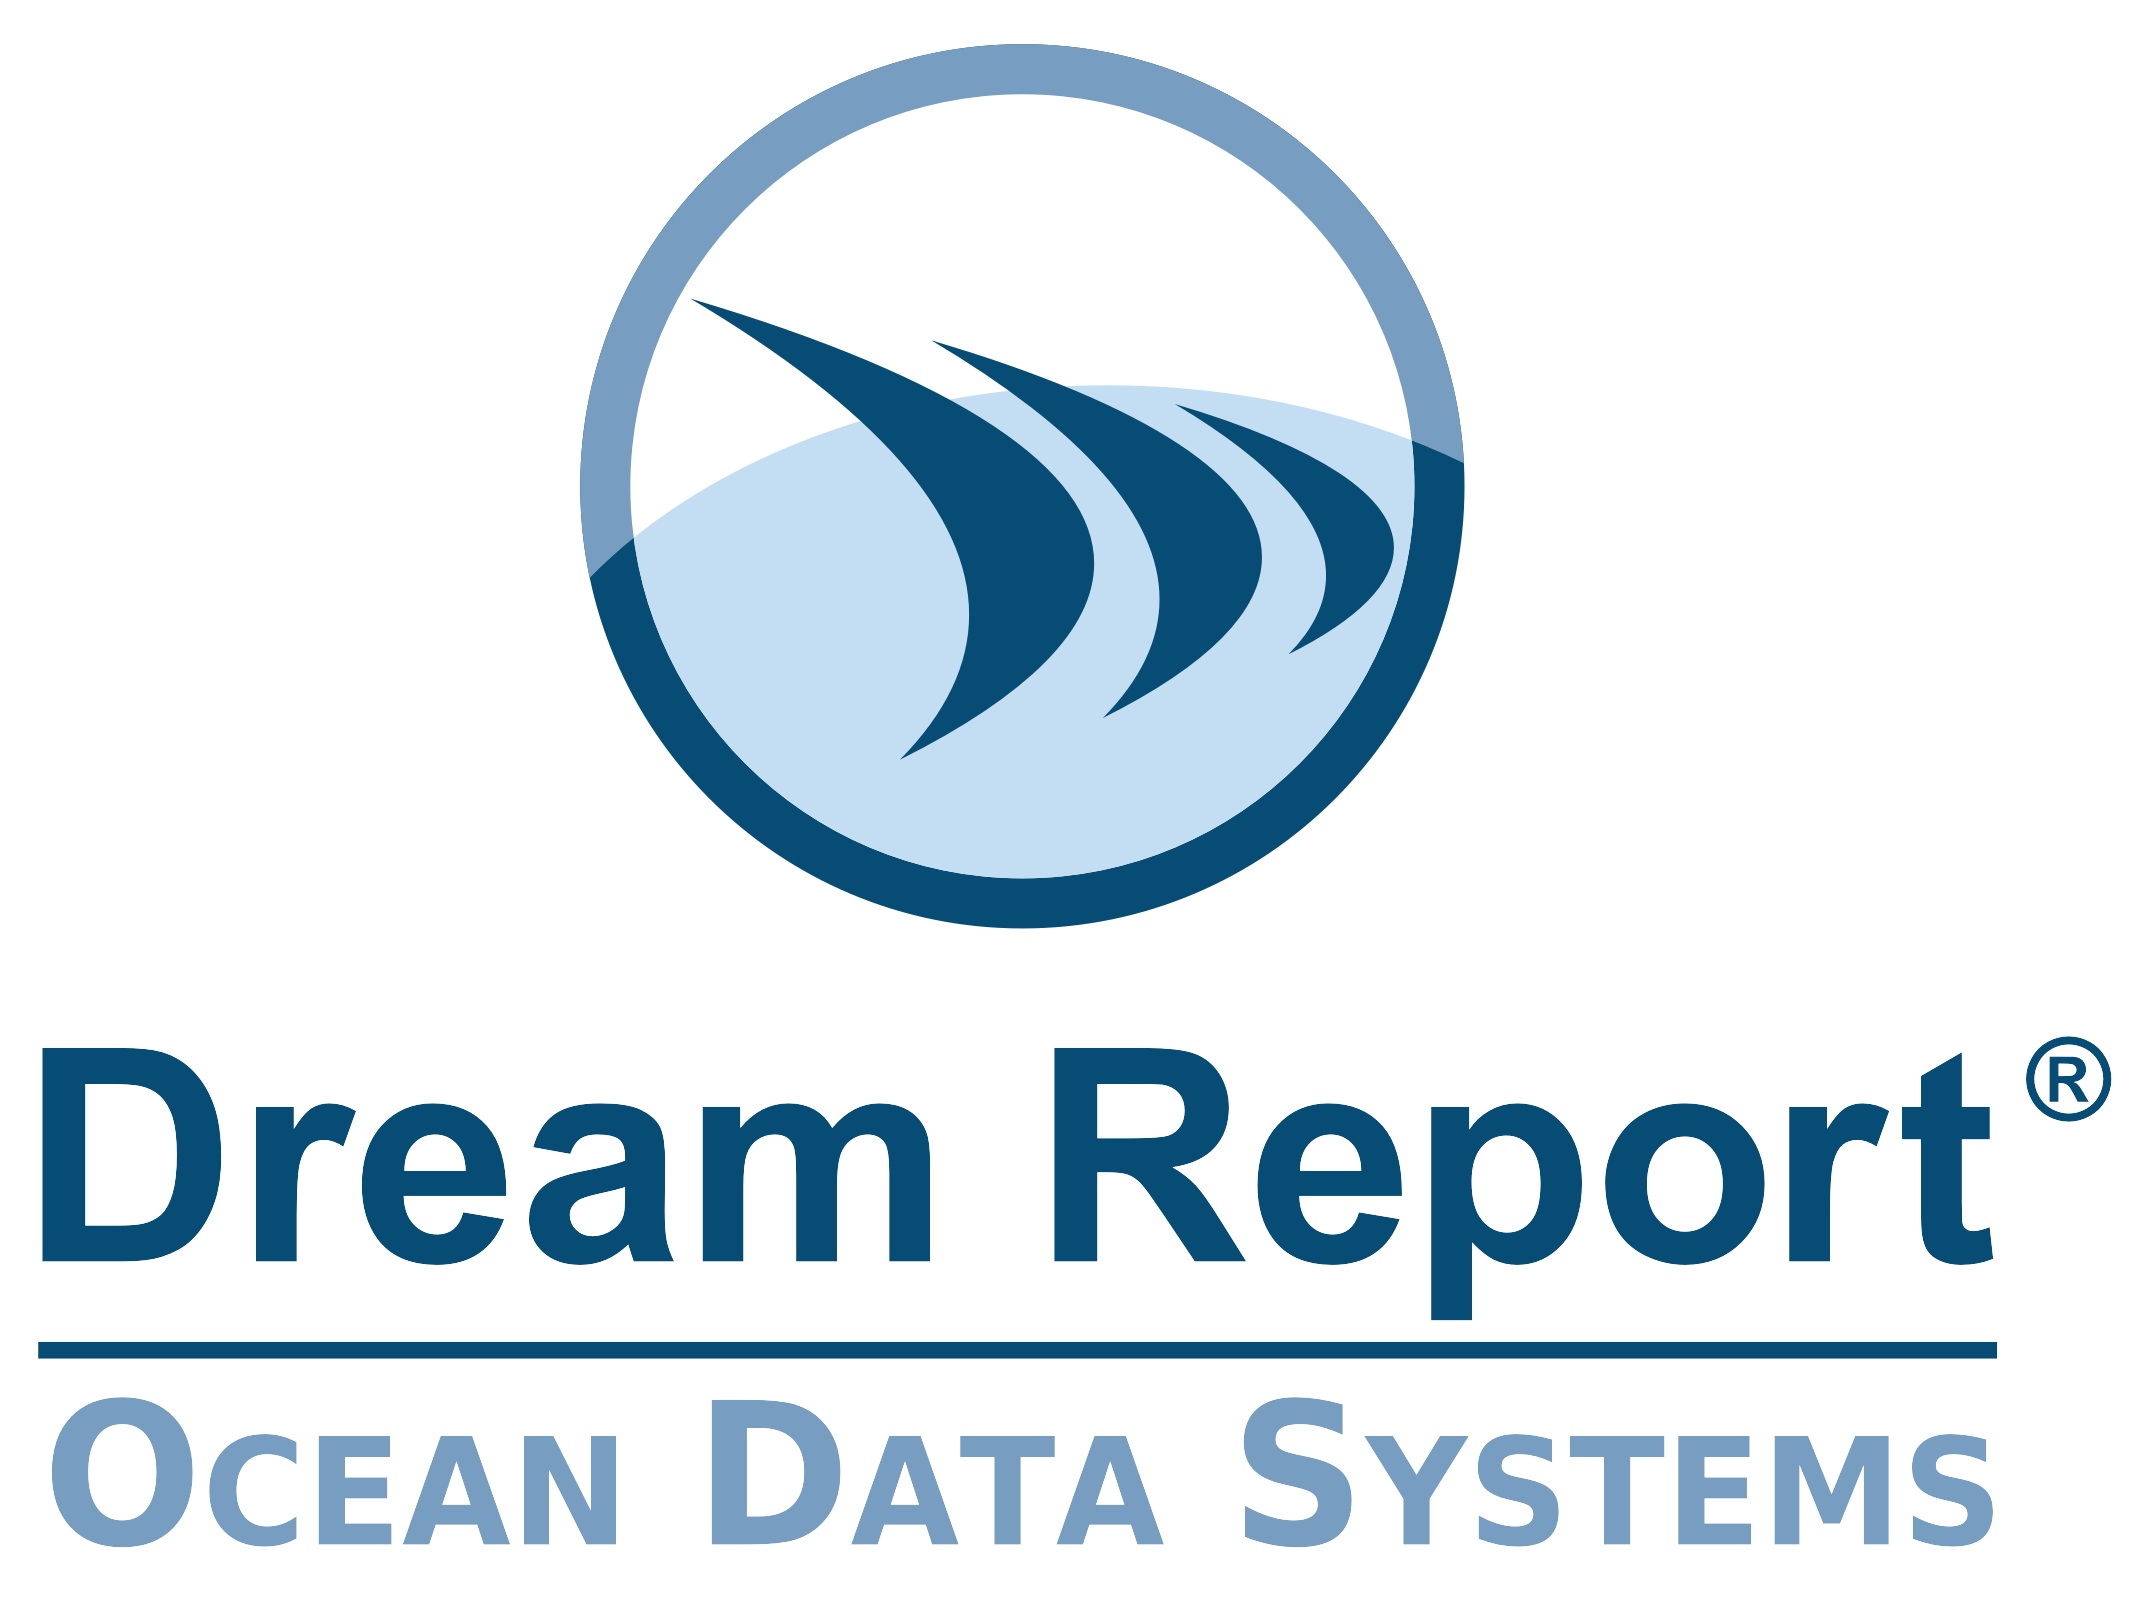 Ocean Data Systems - Makers of Dream Report